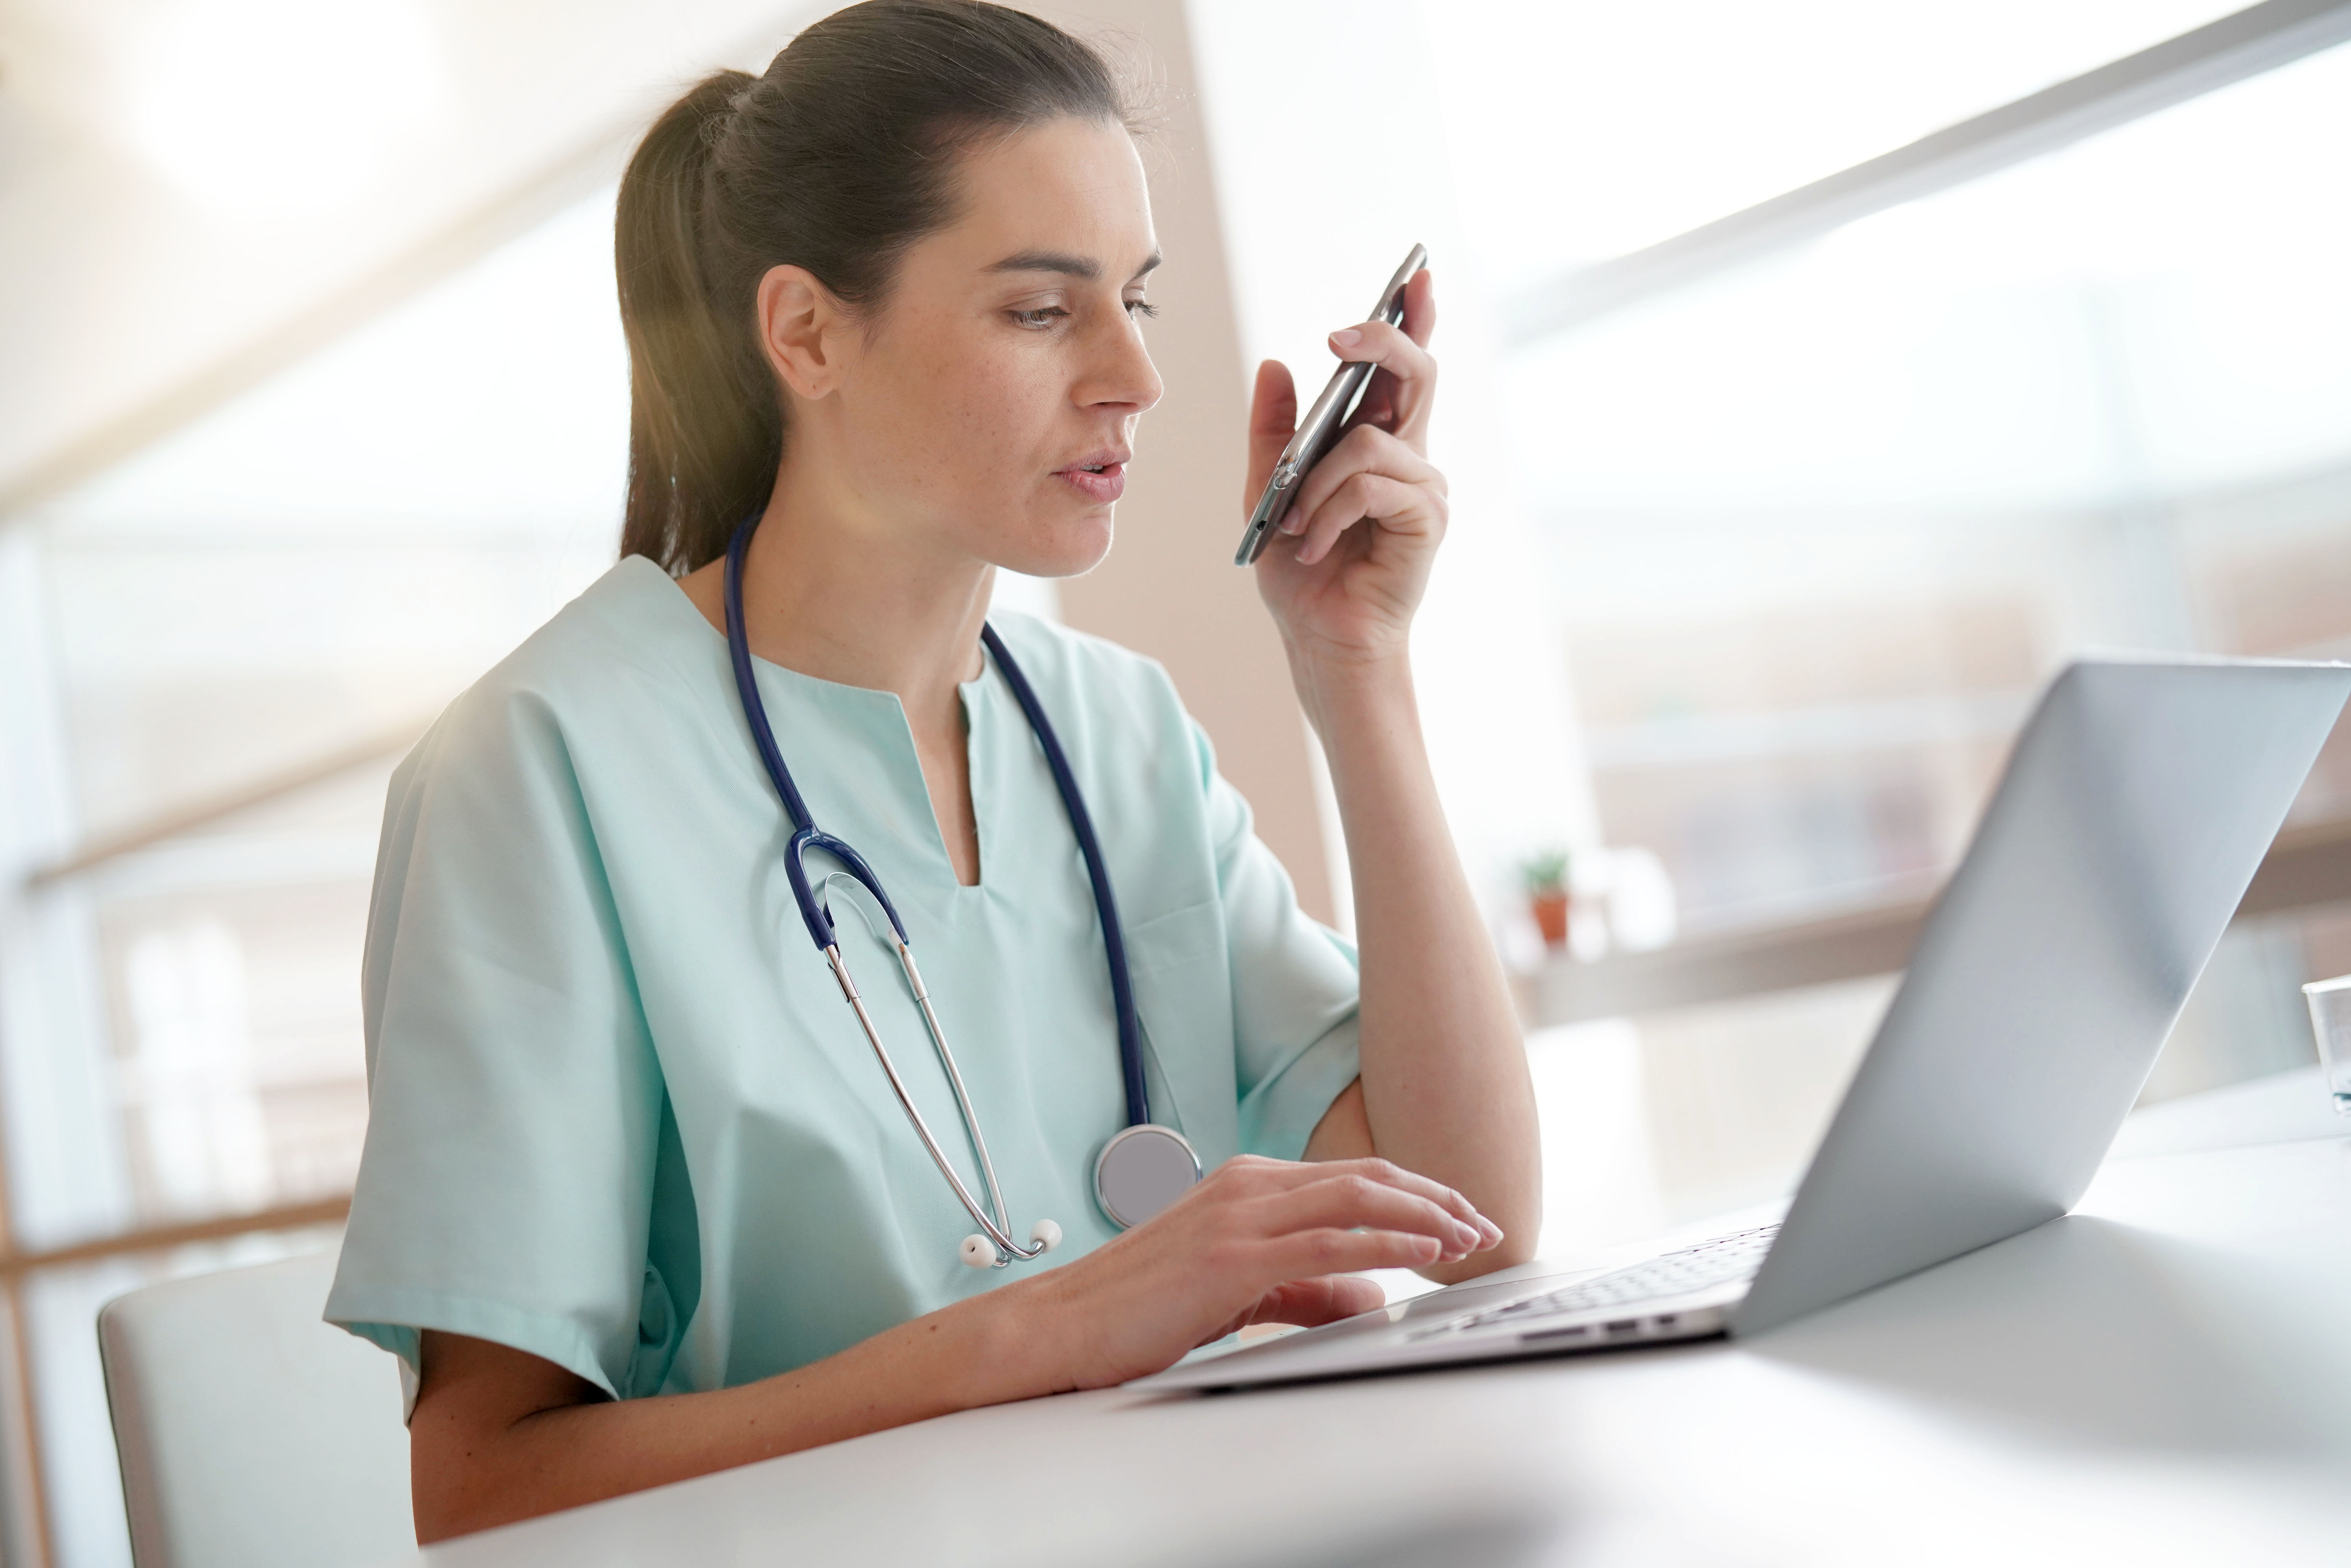 female-doctor-at-desk-with-laptop